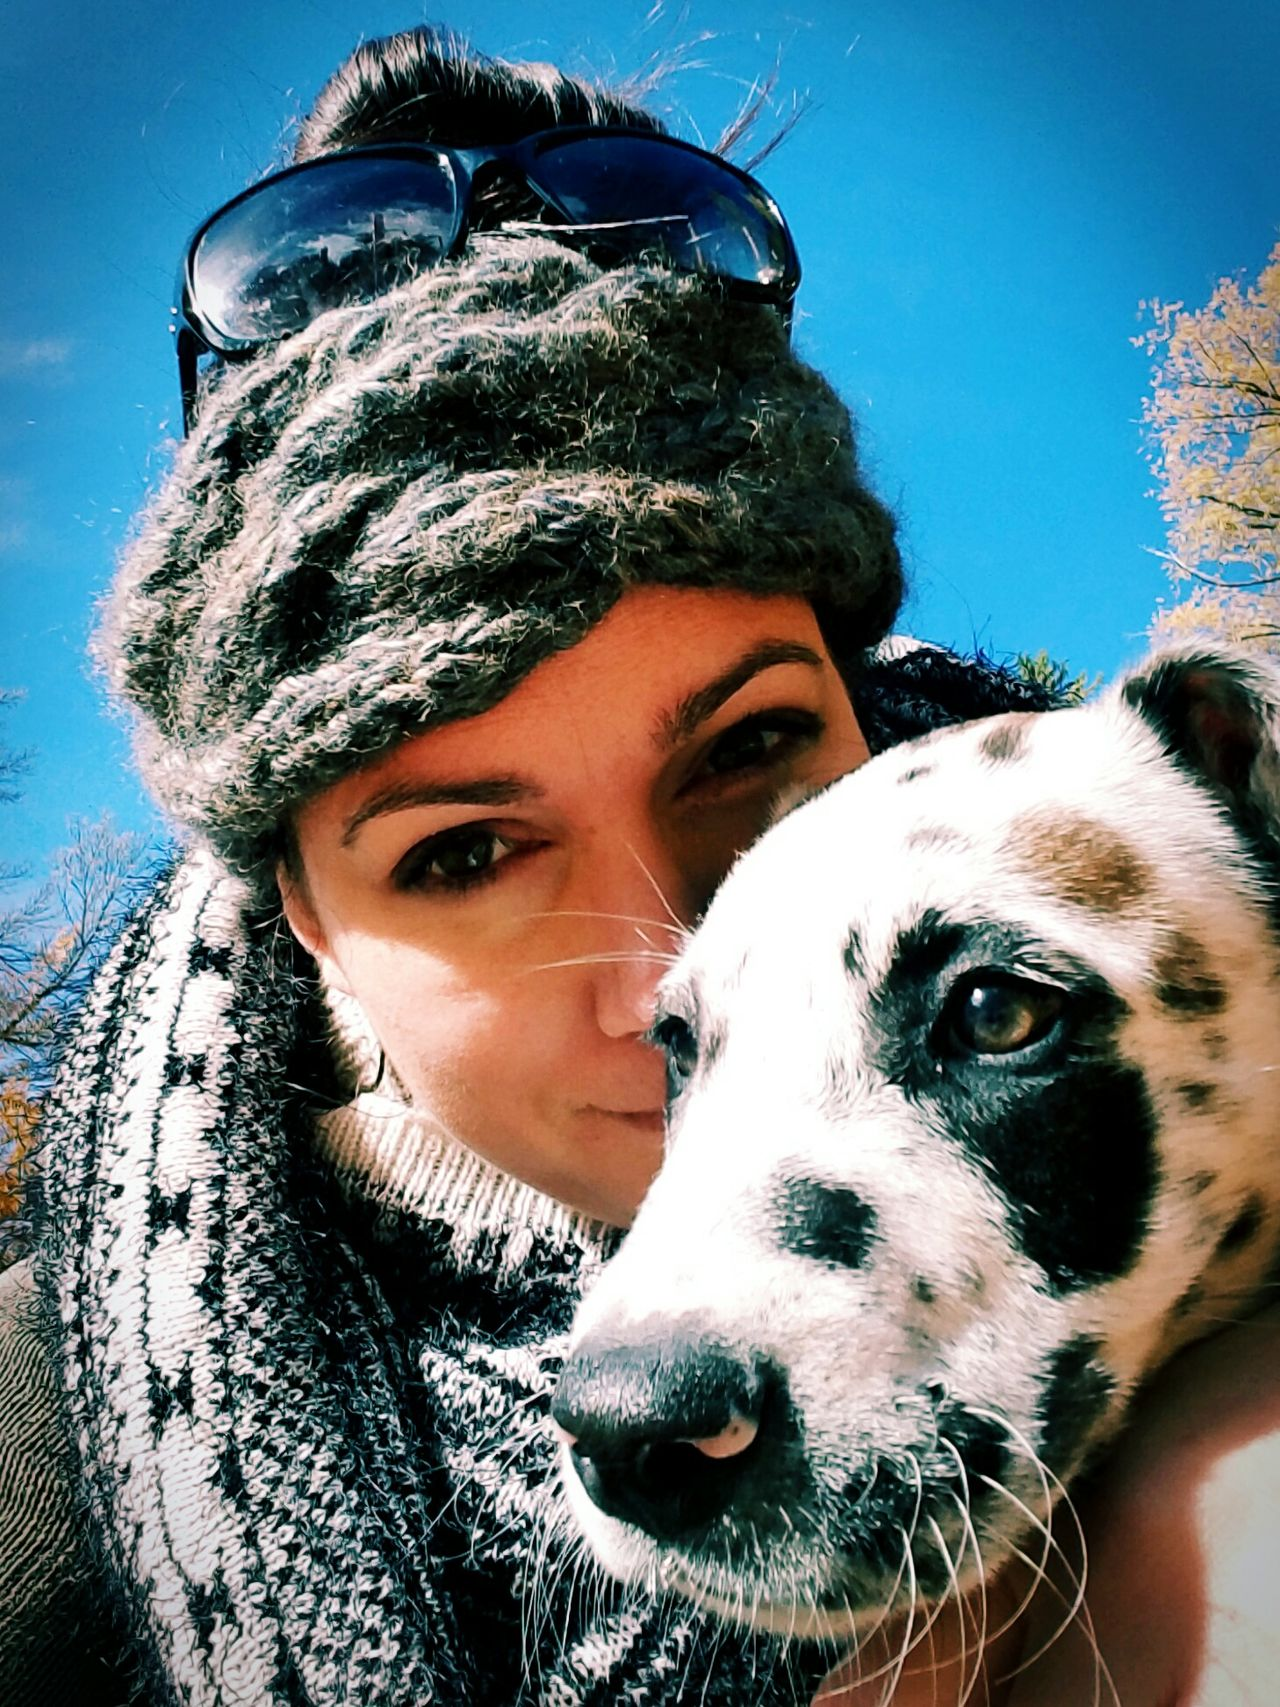 Dog Pets Animal Themes Warm Clothing Close-up Portrait Adult Young Women Friendship One Animal Day People Cold Temperature Outdoors Bonding Selfıe Puppy Fall Autumn Fashion Always Be Cozy